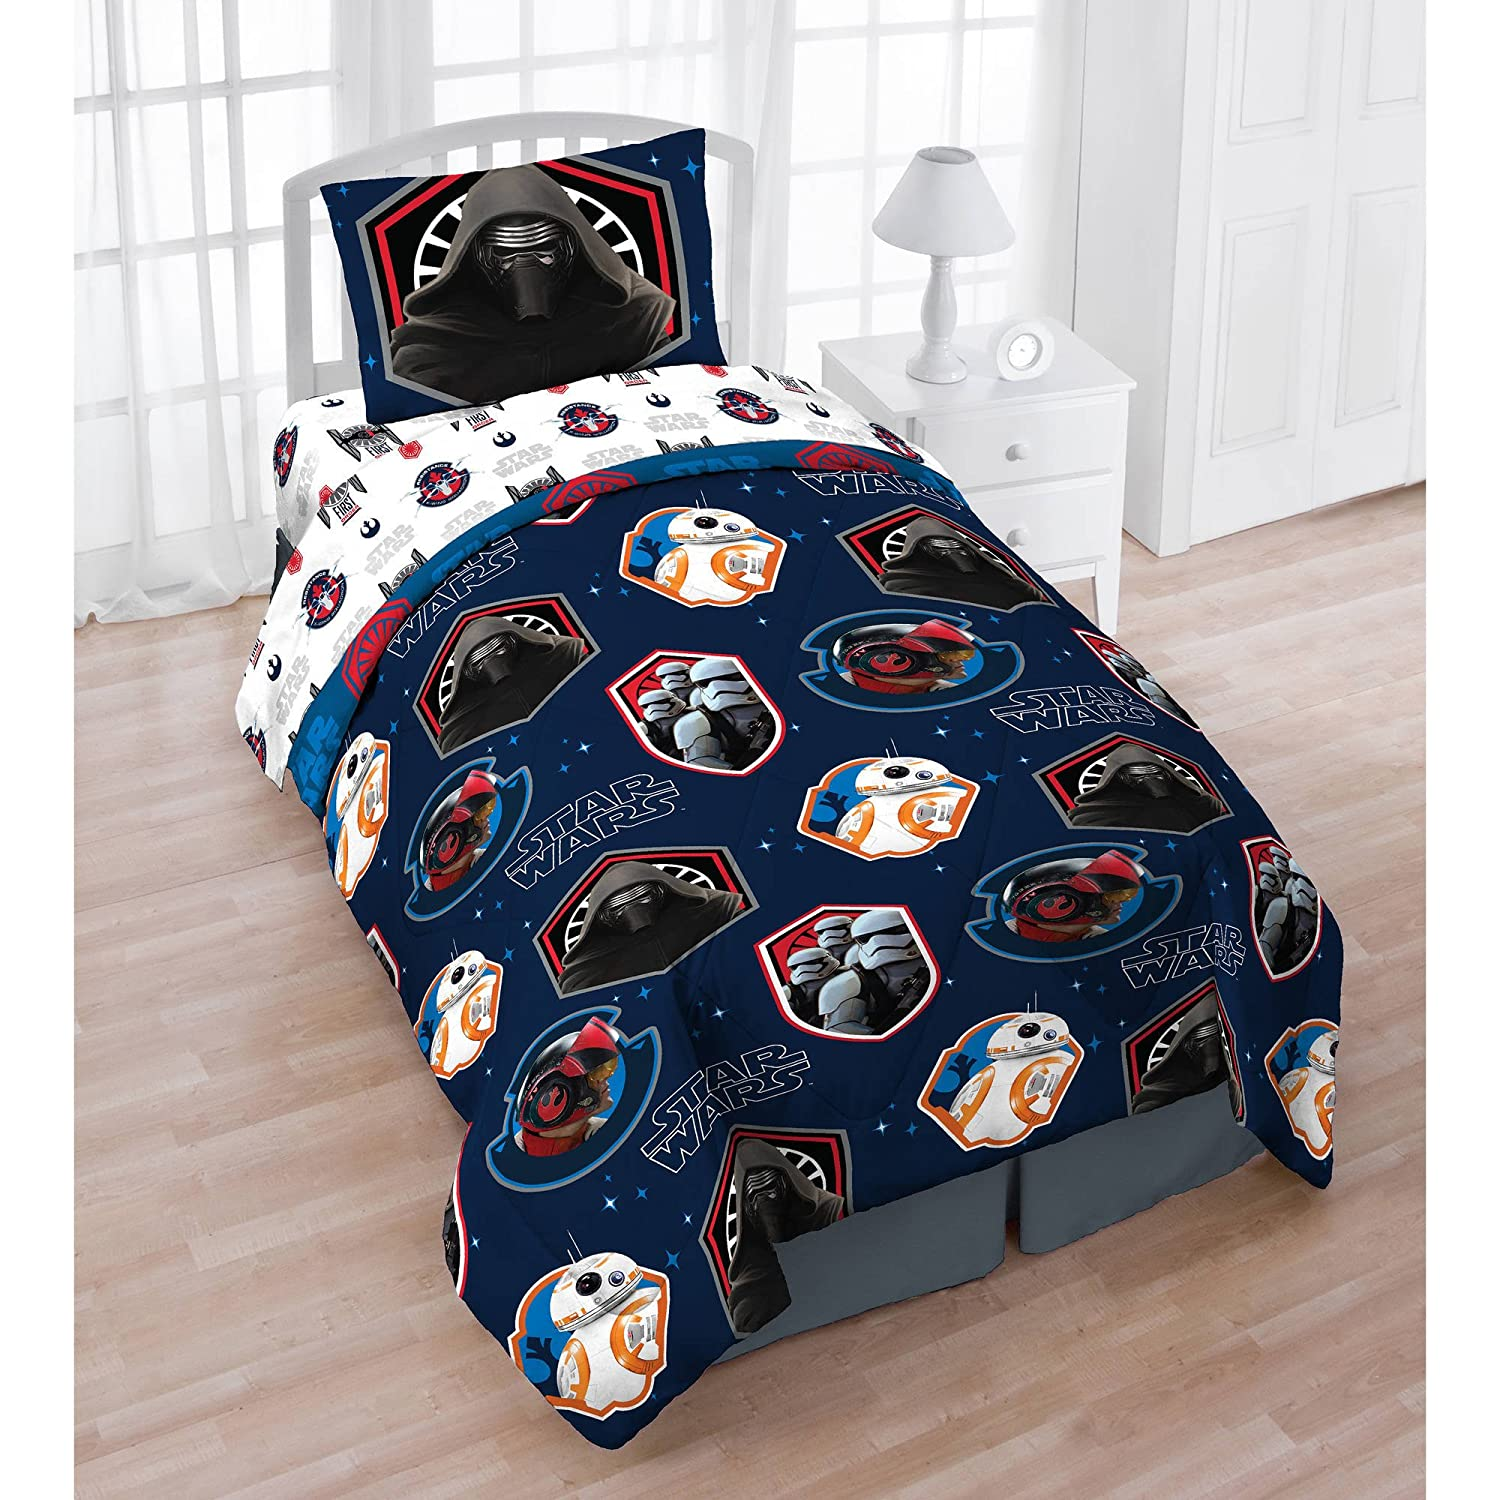 Star Wars Twin Bed in a Bag Bedding Set with BONUS Tote